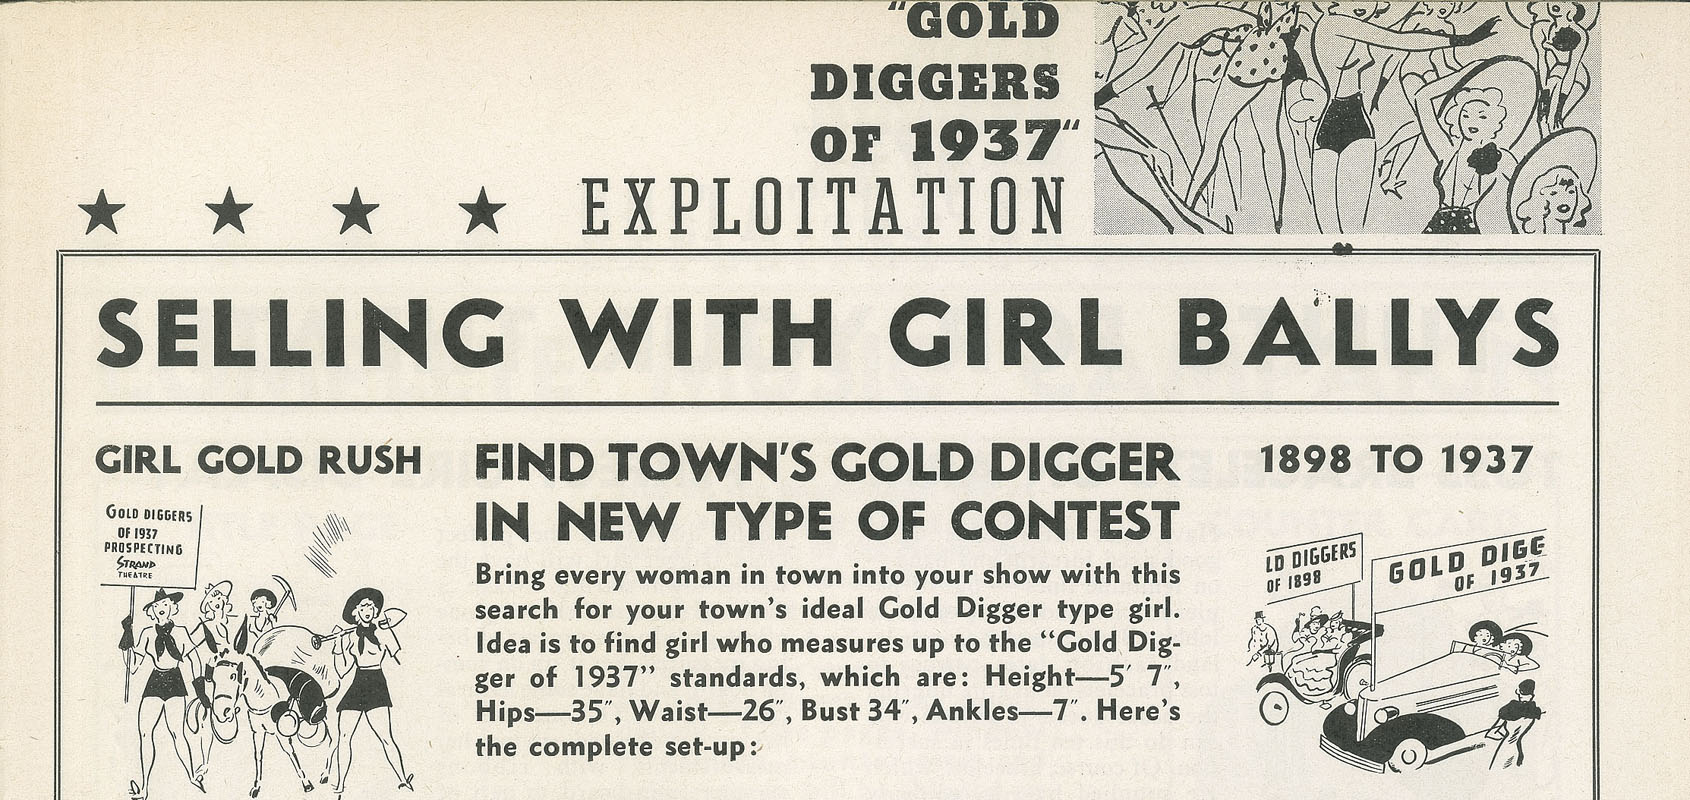 Excerpt from Page 6 of Gold Diggers of 1937 press book.